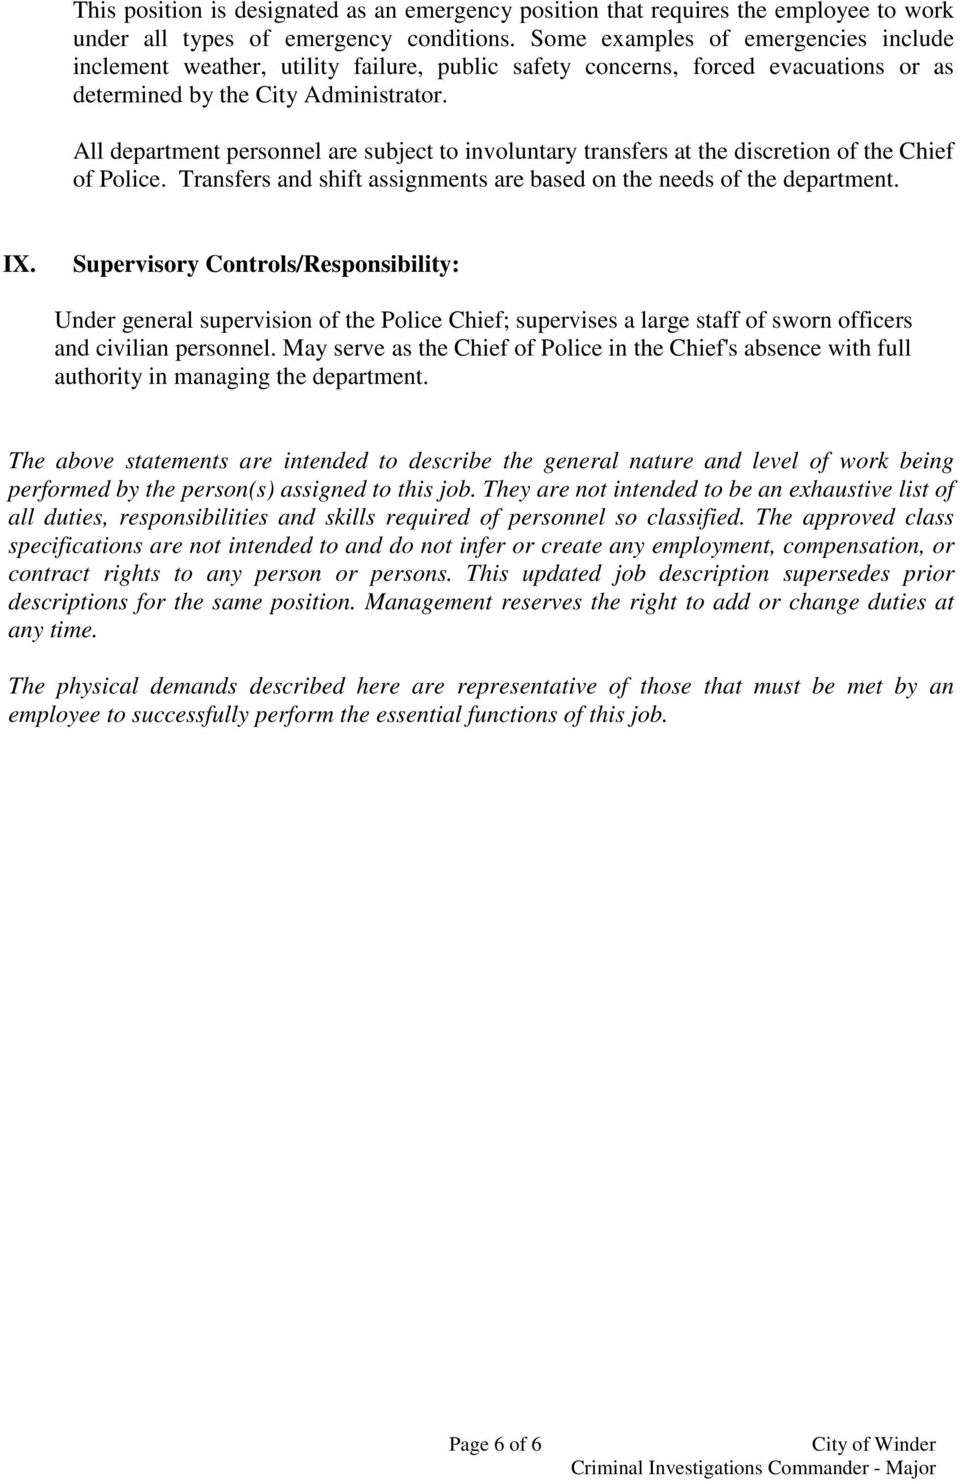 All department personnel are subject to involuntary transfers at the discretion of the Chief of Police. Transfers and shift assignments are based on the needs of the department. IX.